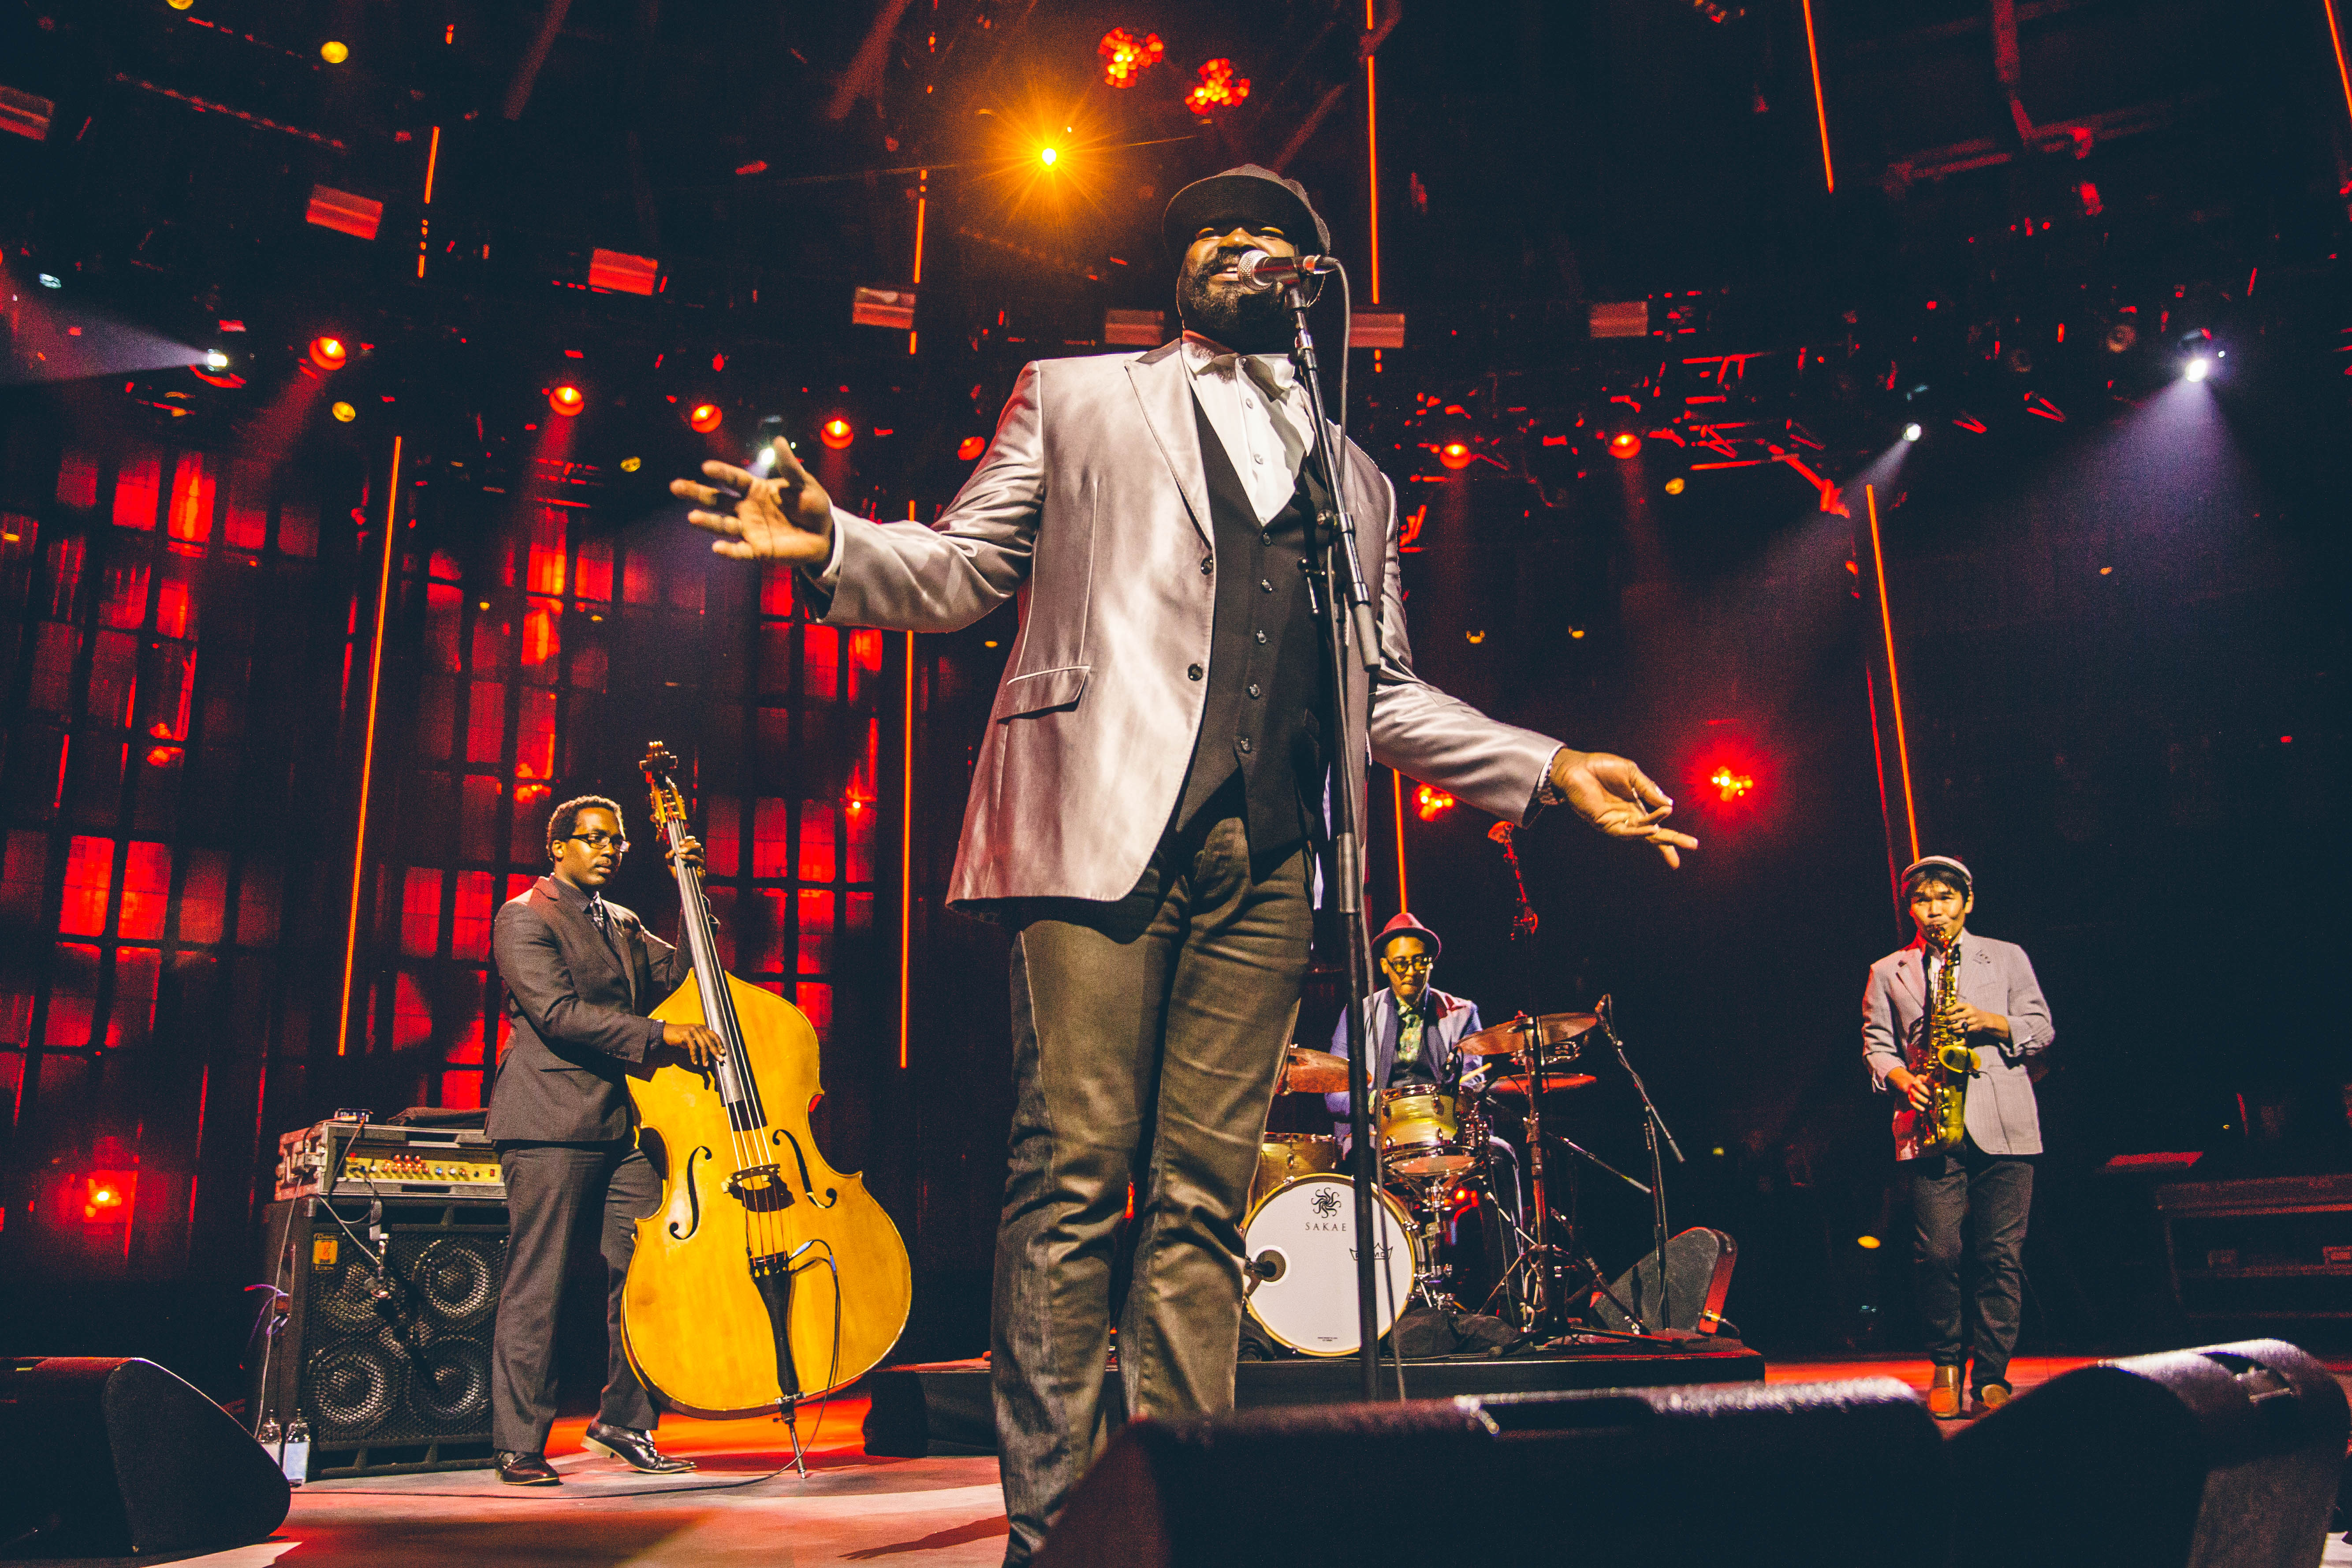 Gregory Porter brings top-level Jazz to iTunes Festival and Hans Zimmer joins Eric Whitacre for a night to remember